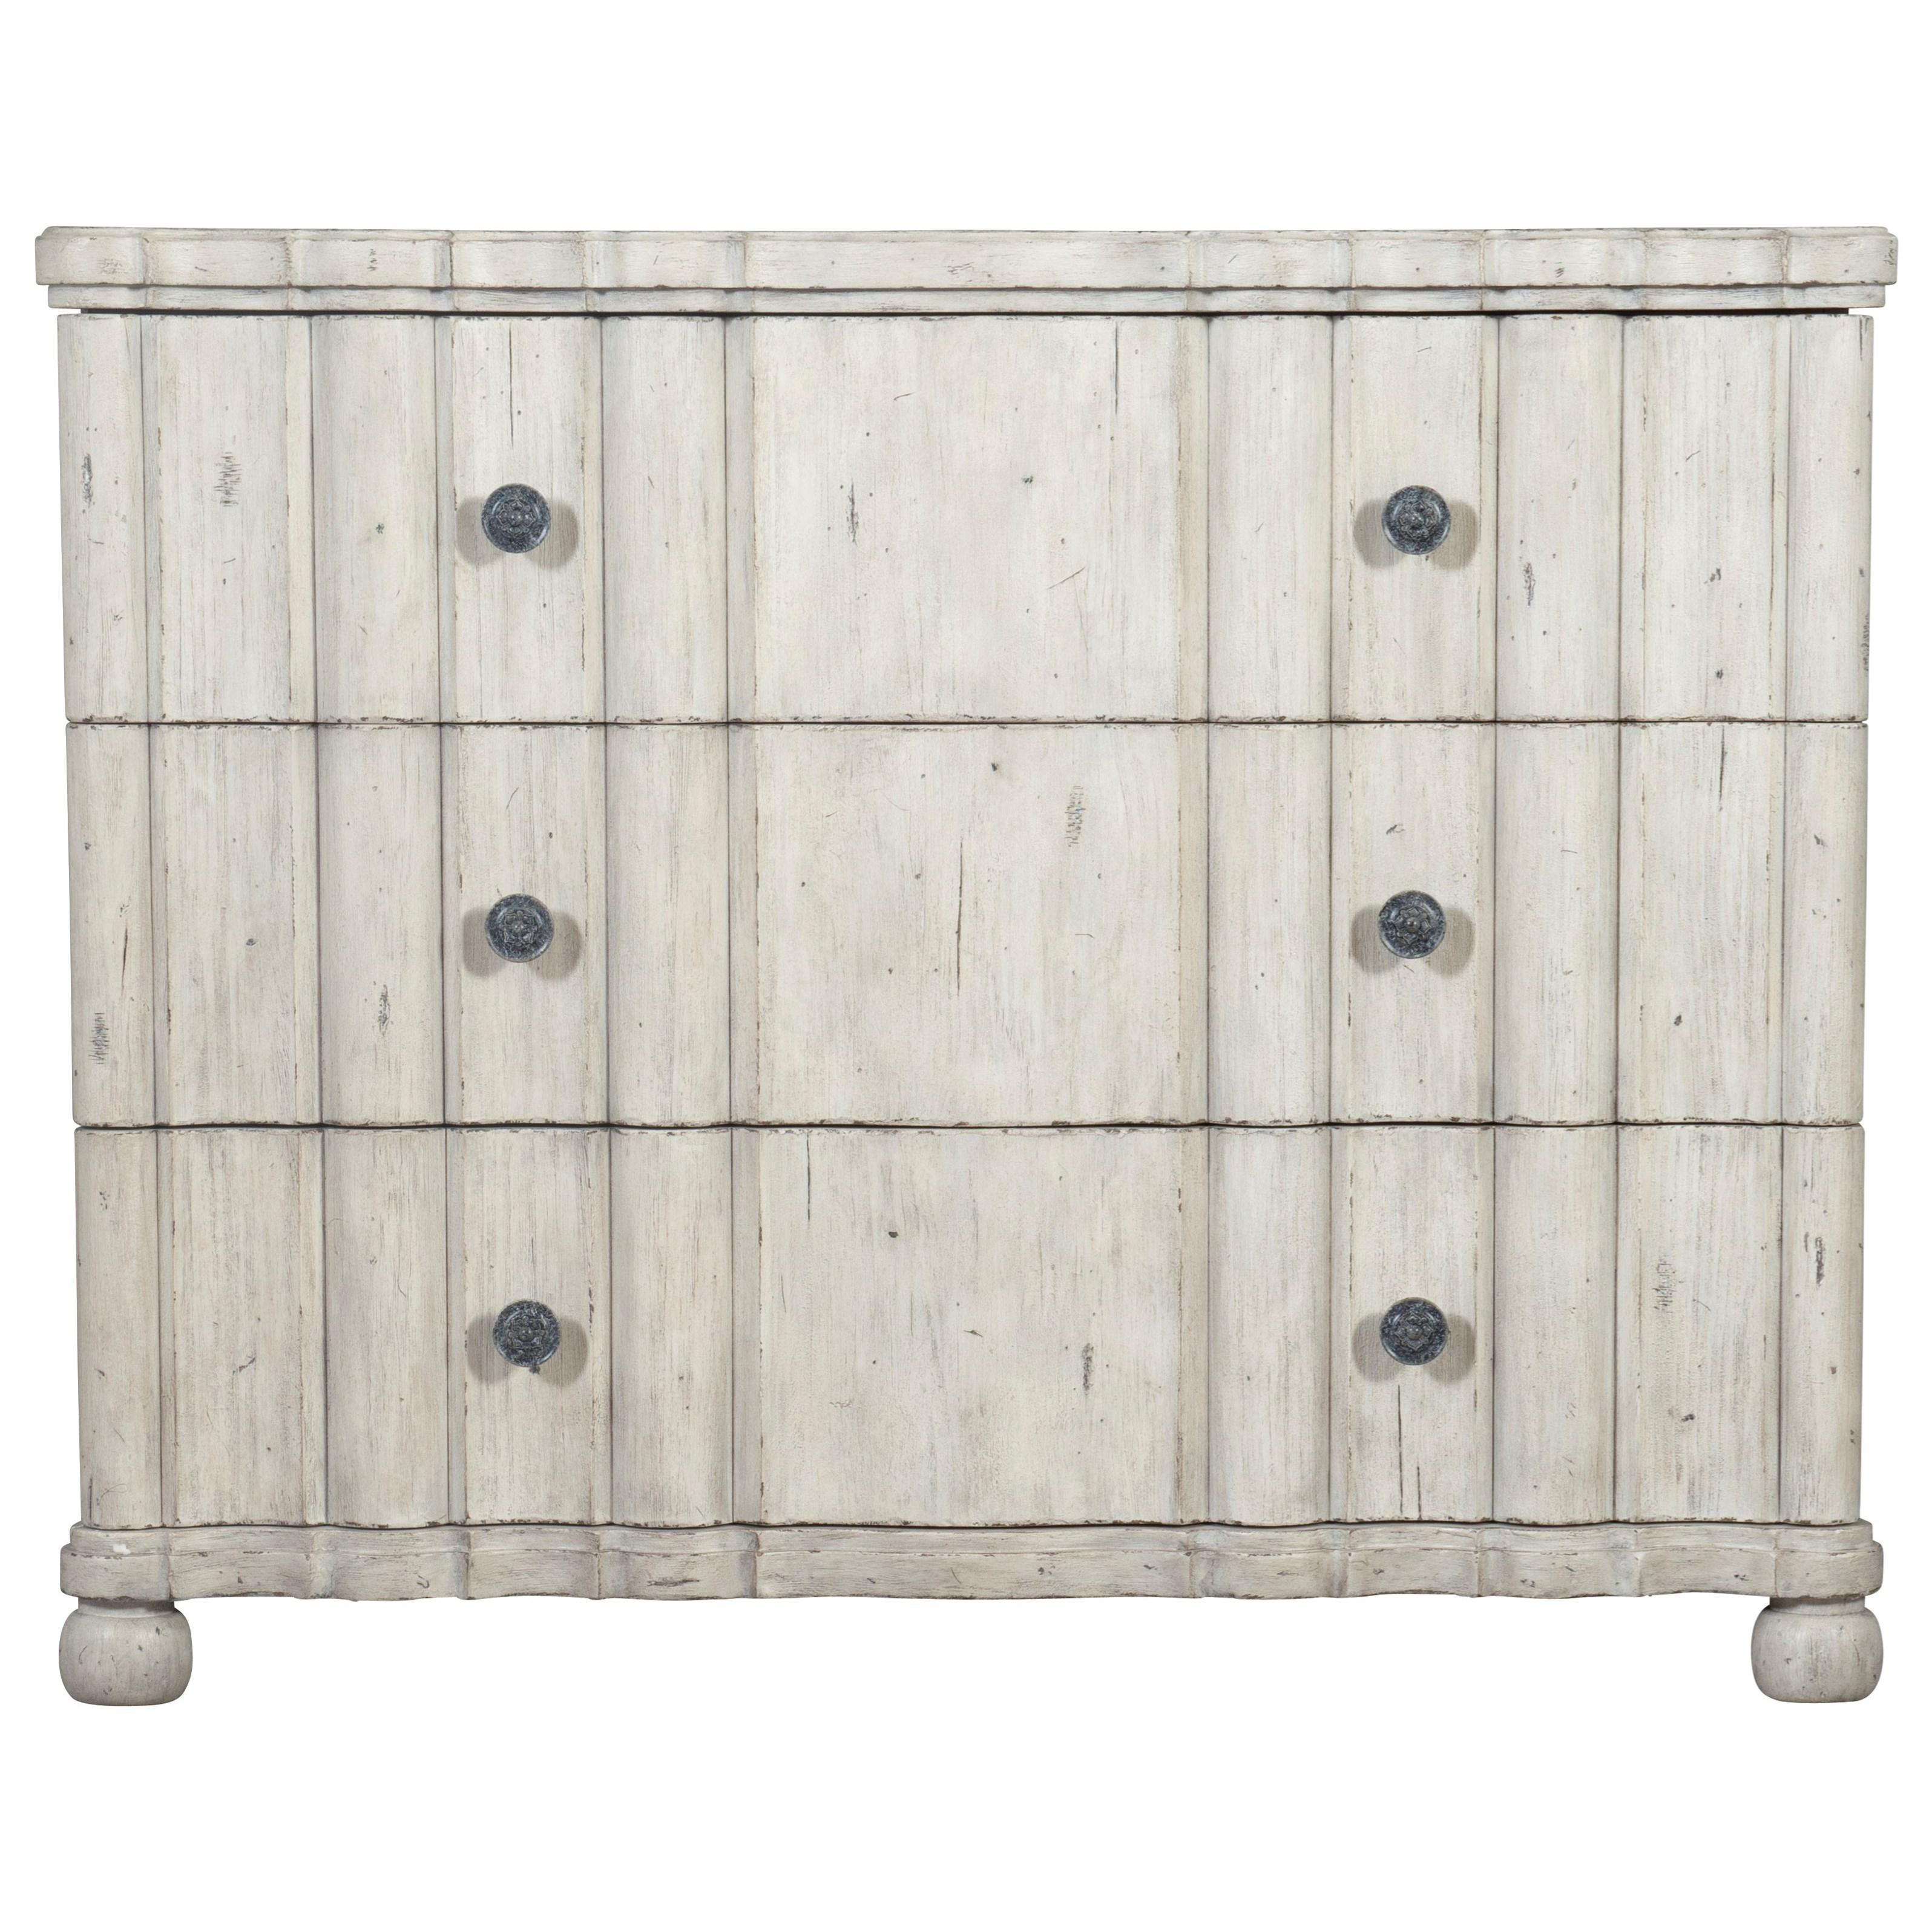 Mirabelle Bachelor's Chest by Bernhardt at Baer's Furniture